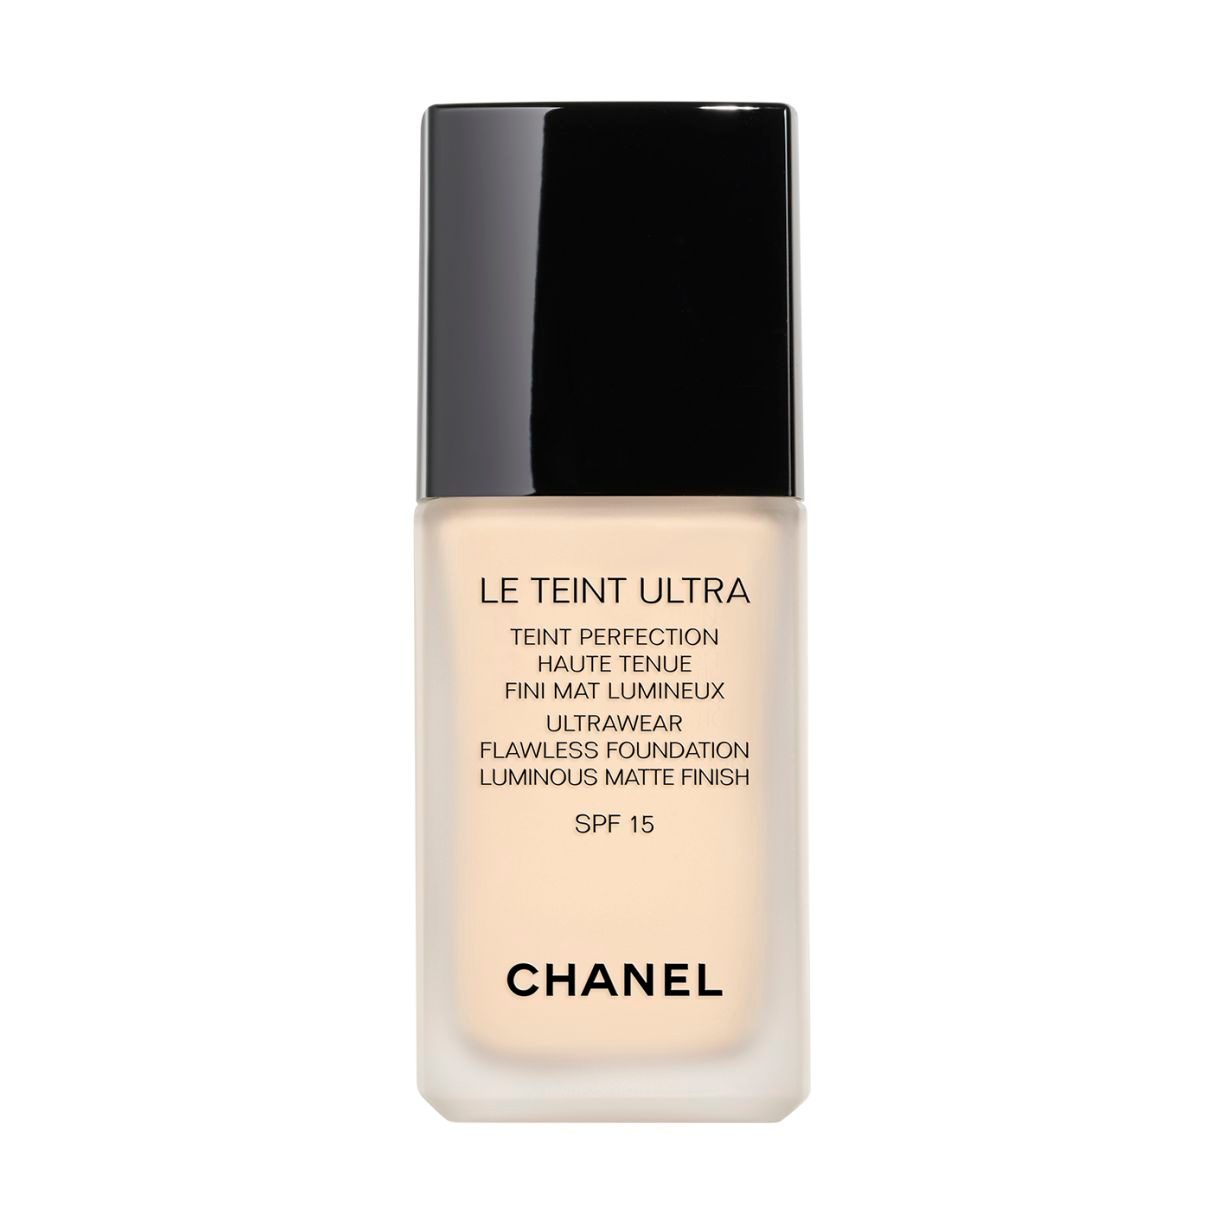 LE TEINT ULTRA ULTRAWEAR FLAWLESS FOUNDATION LUMINOUS MATTE FINISH. SPF 15